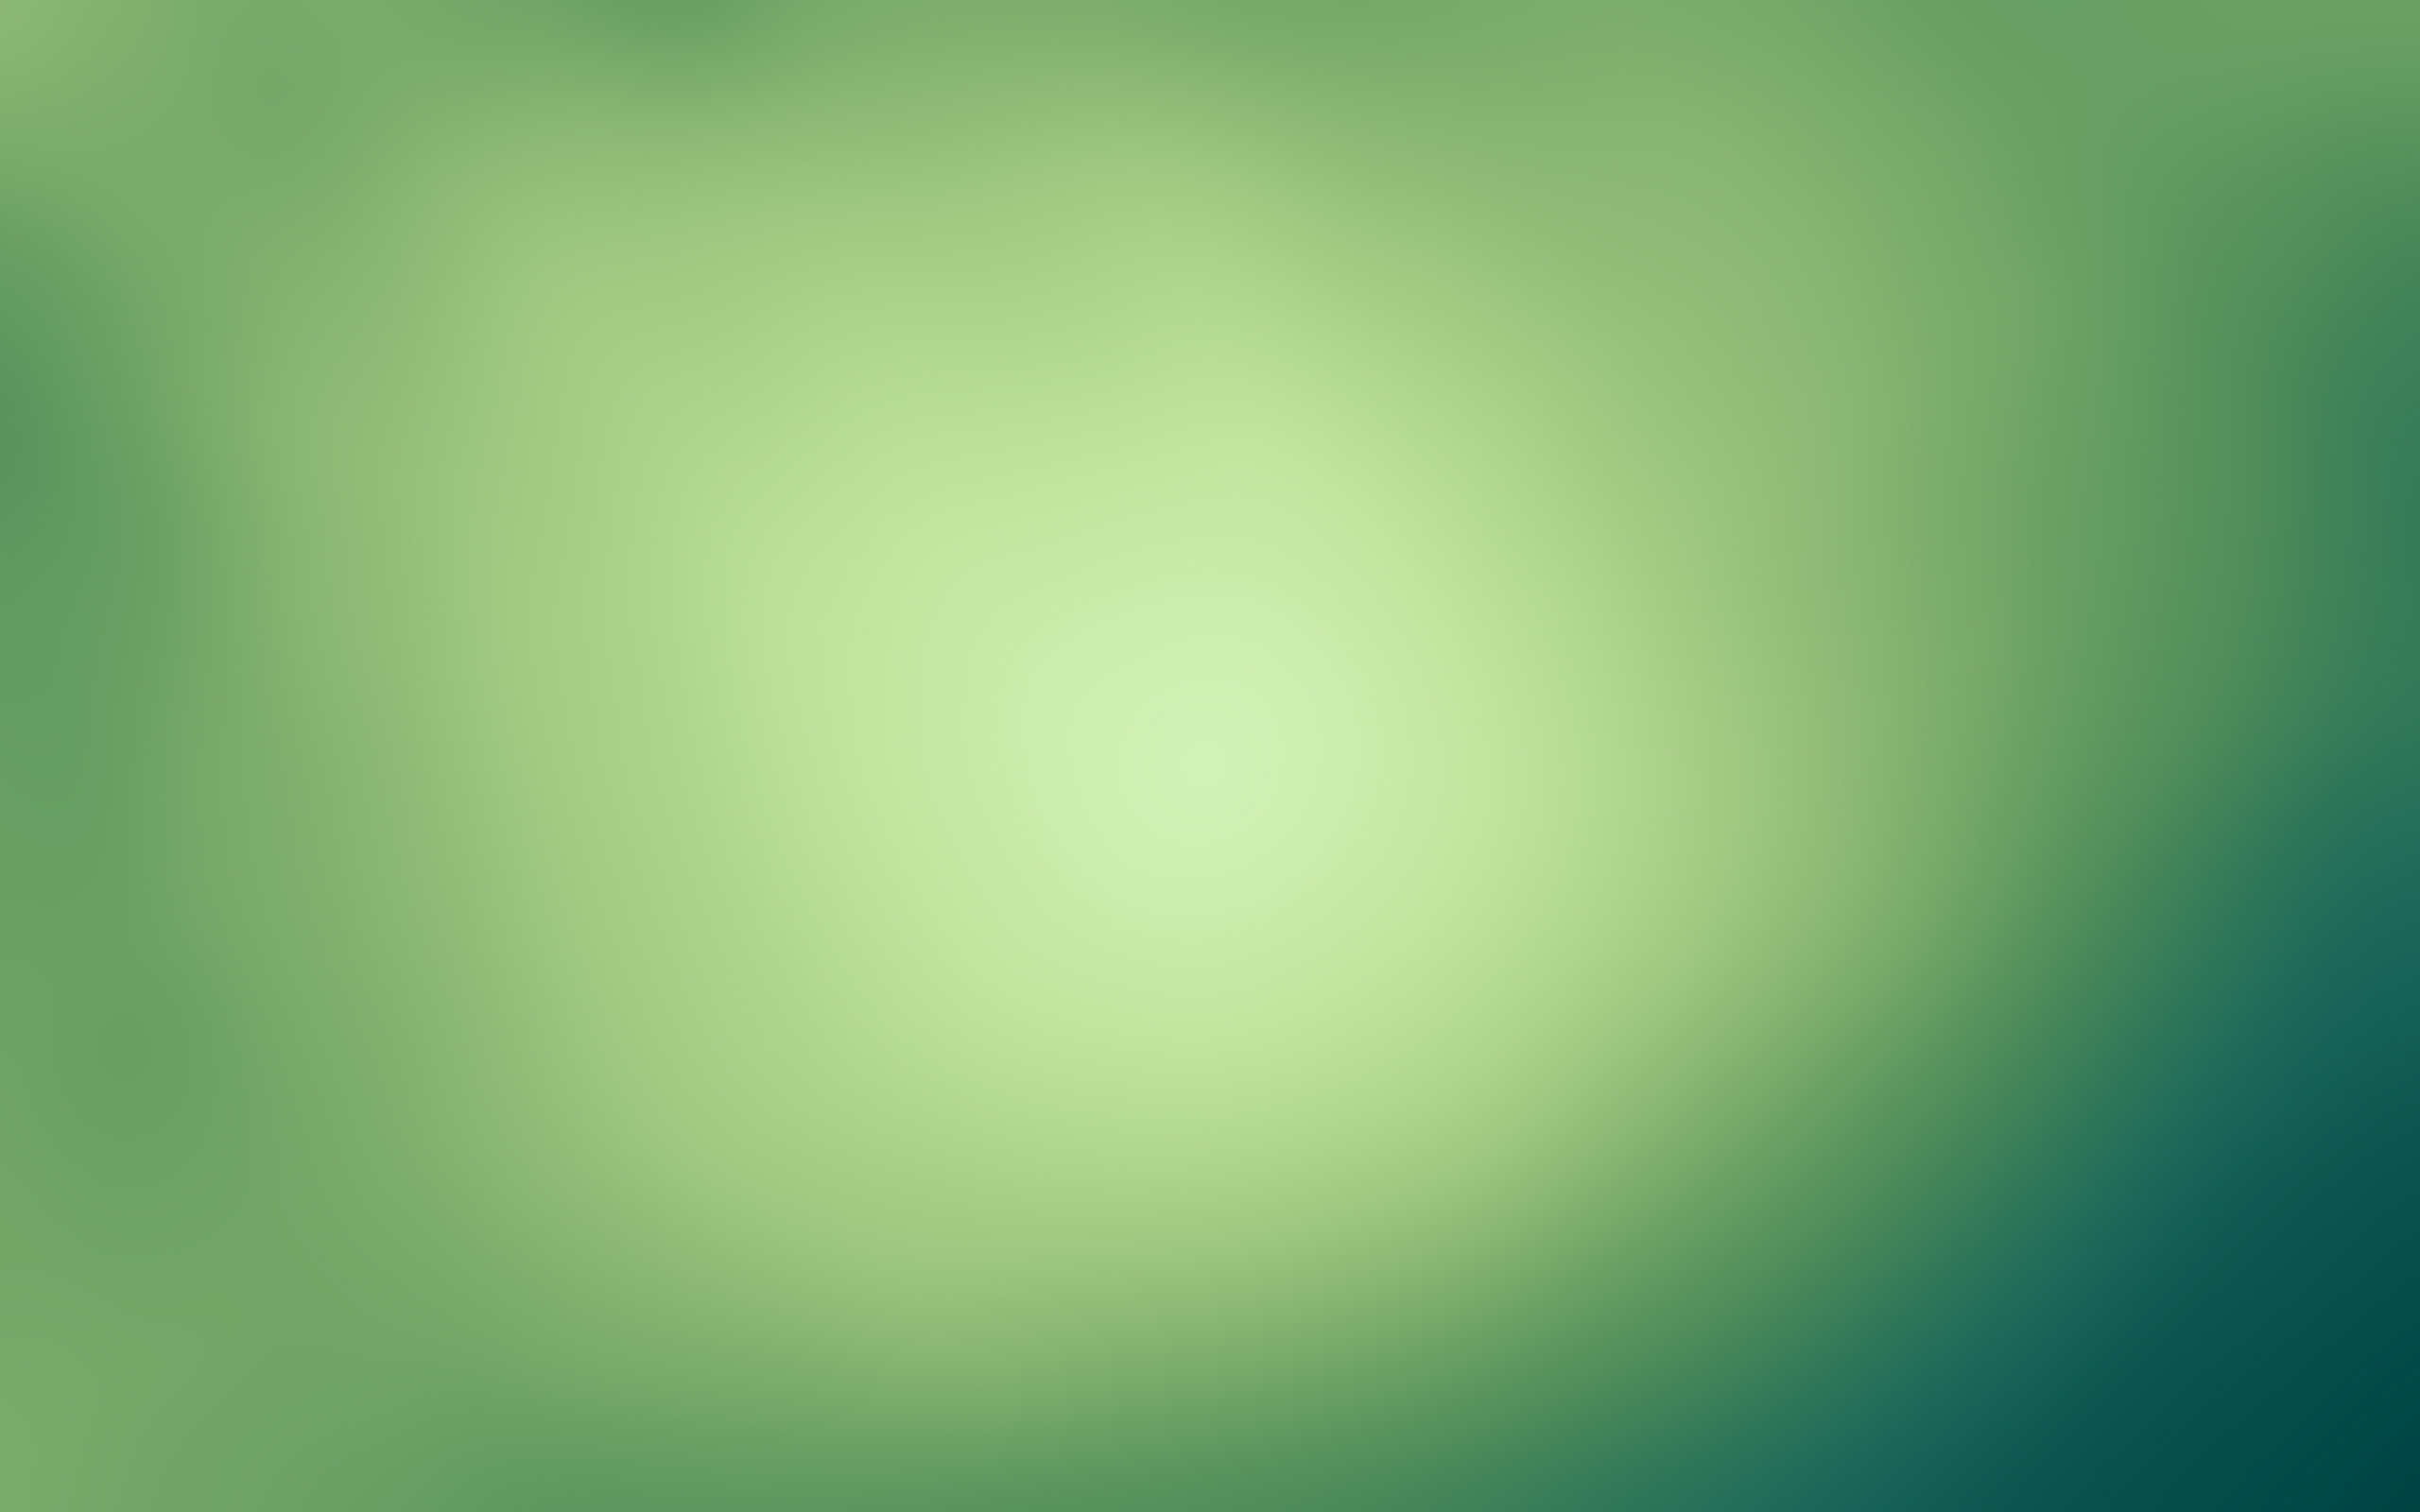 HD-Green-Background-July-23-2014.jpg